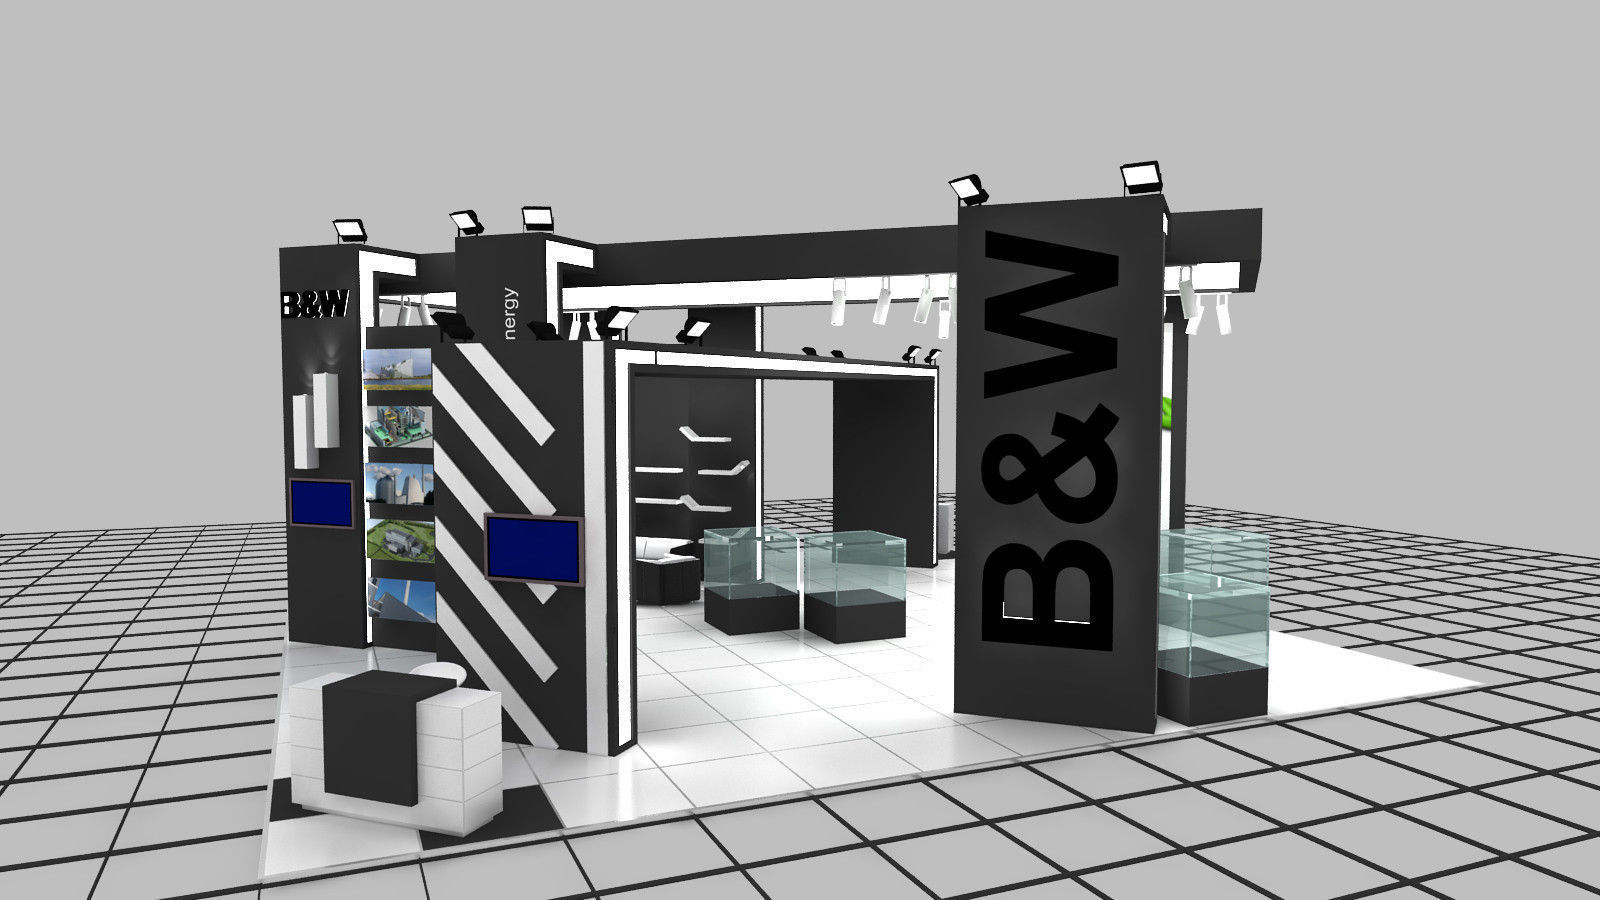 Exhibition Stand Designer Job Description : B m exhibition stand design d model max ds dwg chr